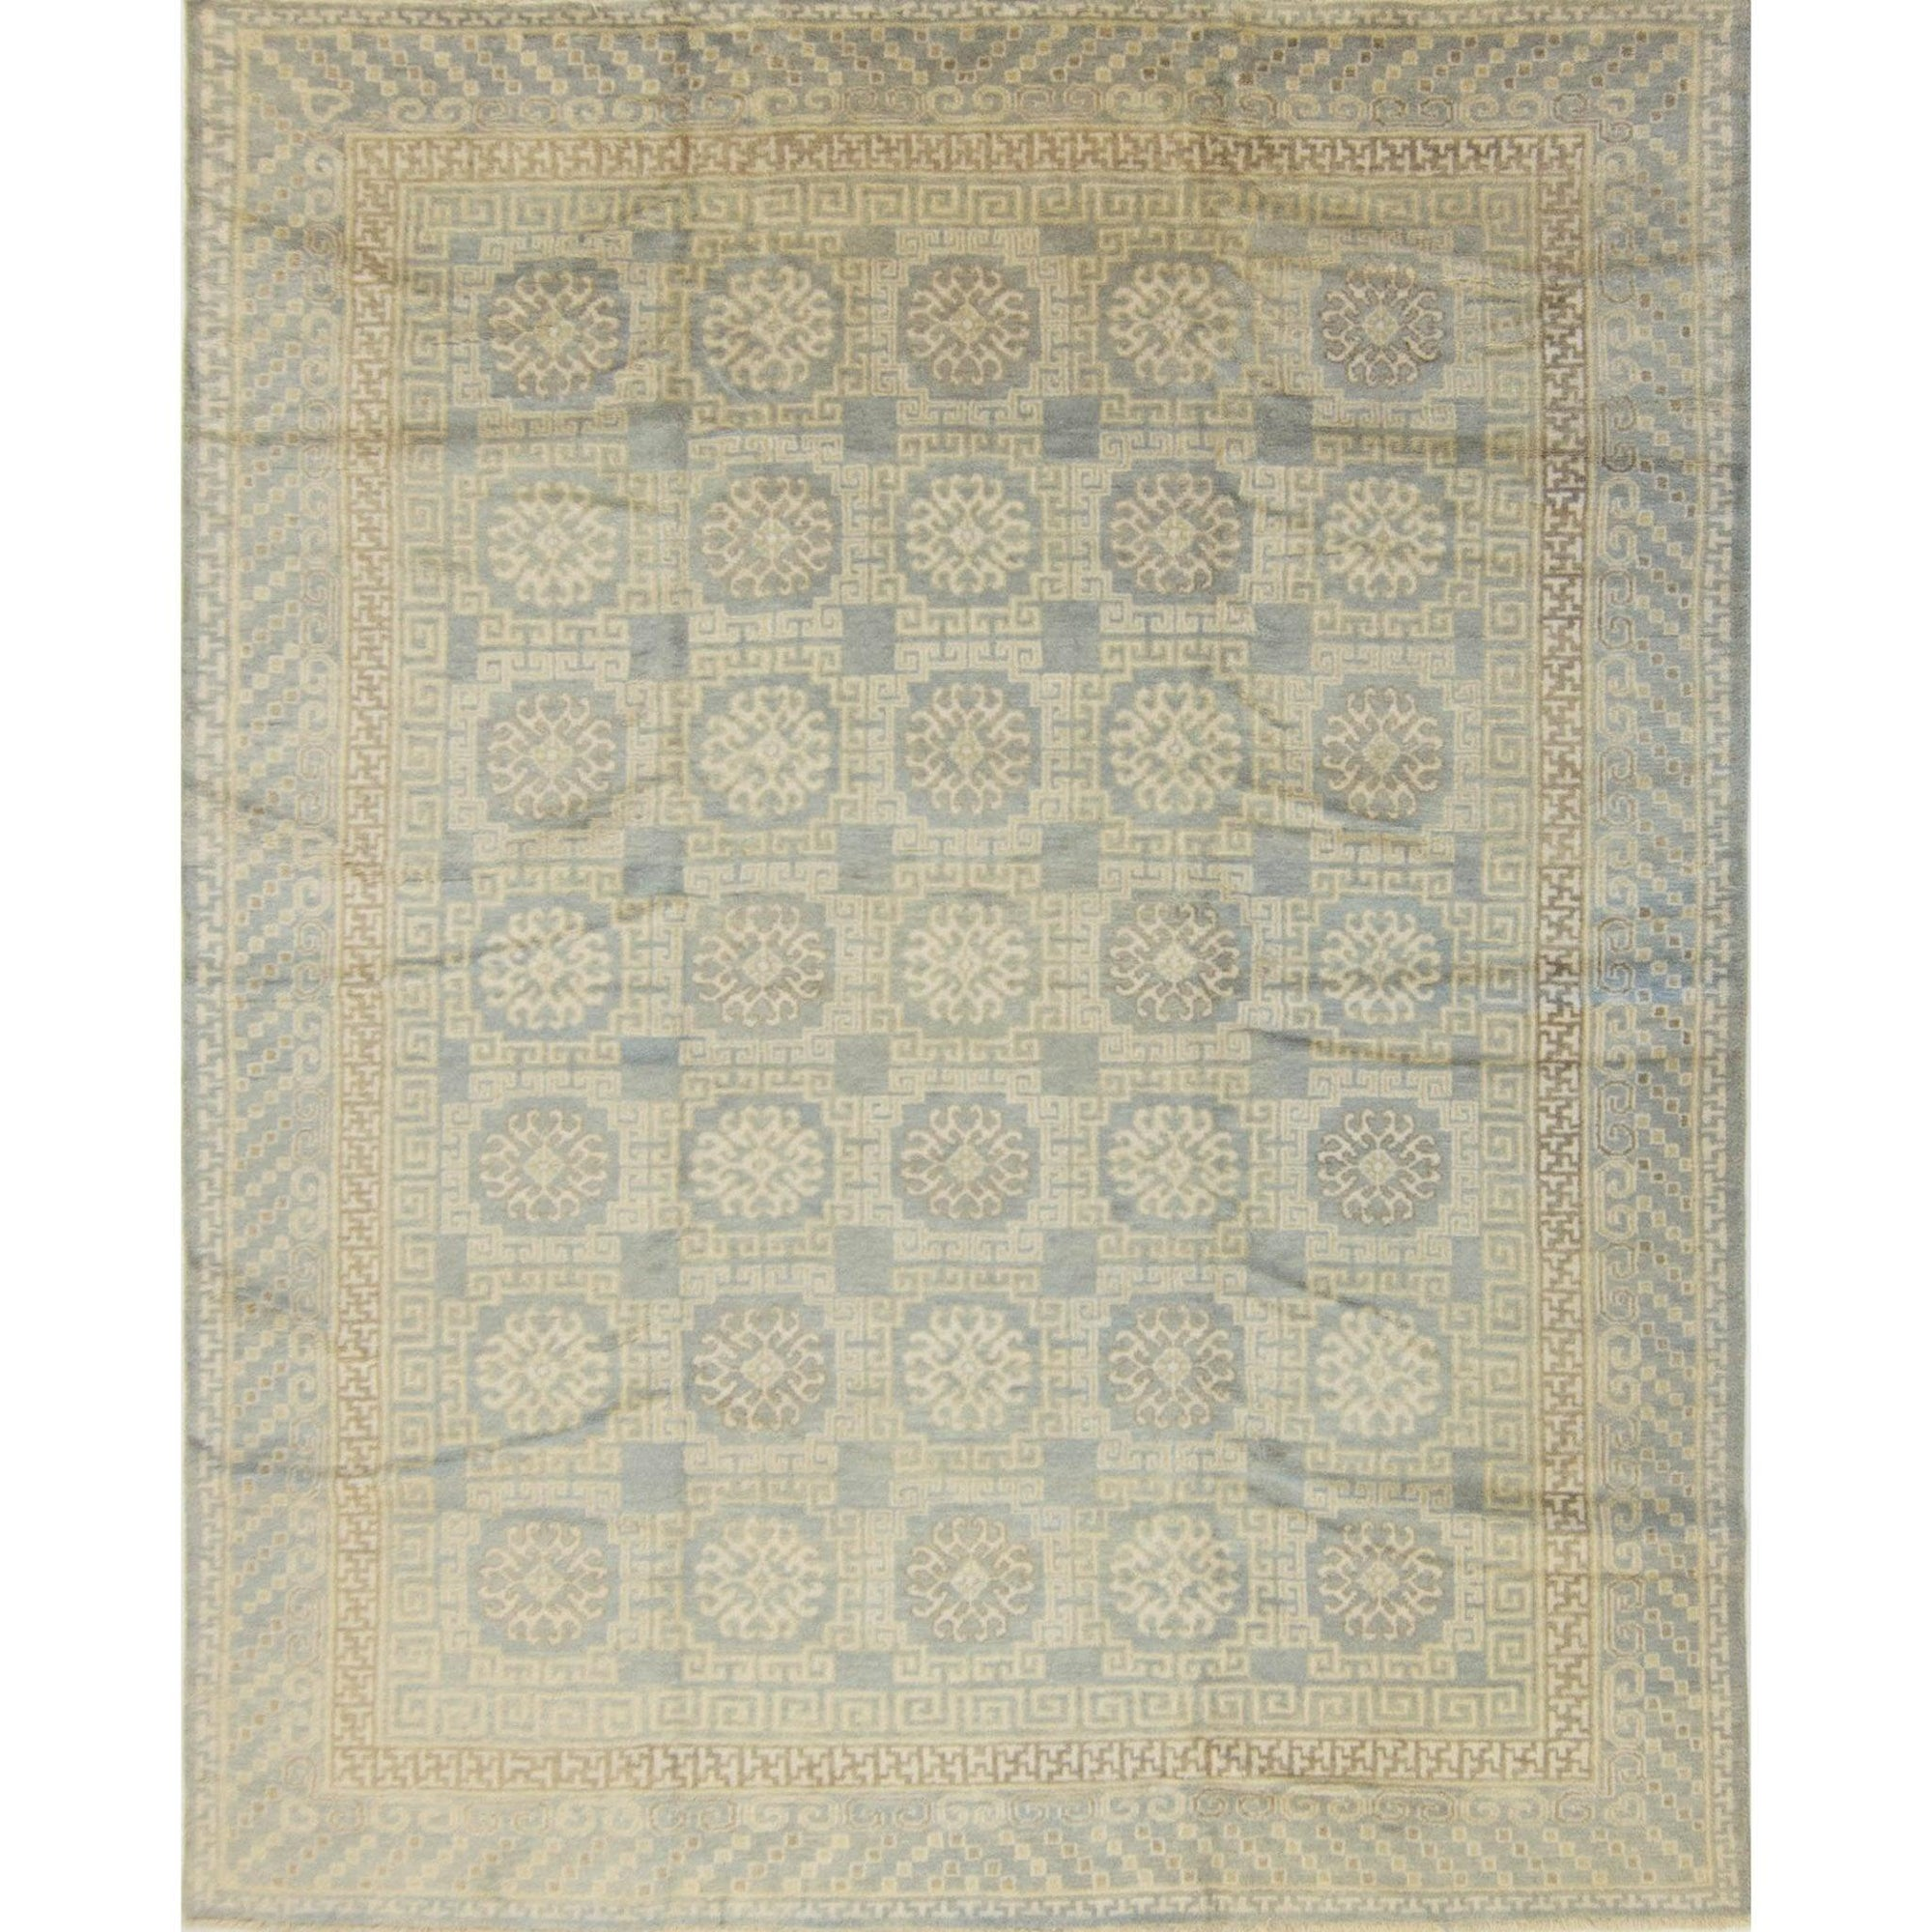 Vintage Hand-knotted wool Khothan Rug 244cm x 297cm Persian-Rug | House-of-Haghi | NewMarket | Auckland | NZ | Handmade Persian Rugs | Hand Knotted Persian Rugs